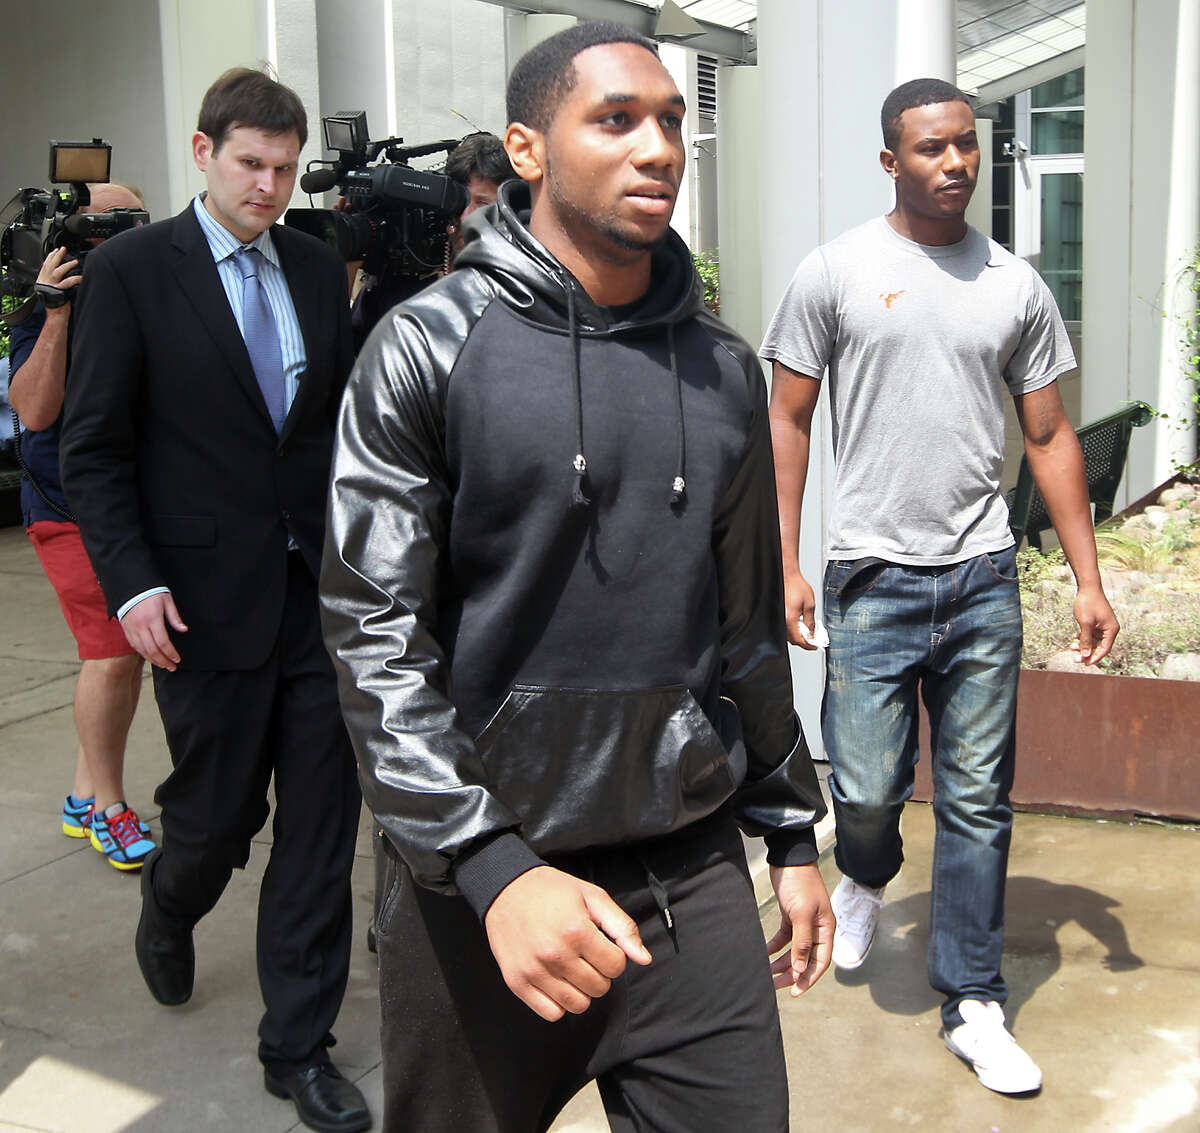 UT football players Kendall Sanders, left, and Montrel Meander, right, leave the Travis County Criminal Justice Center after being booked Thursday.